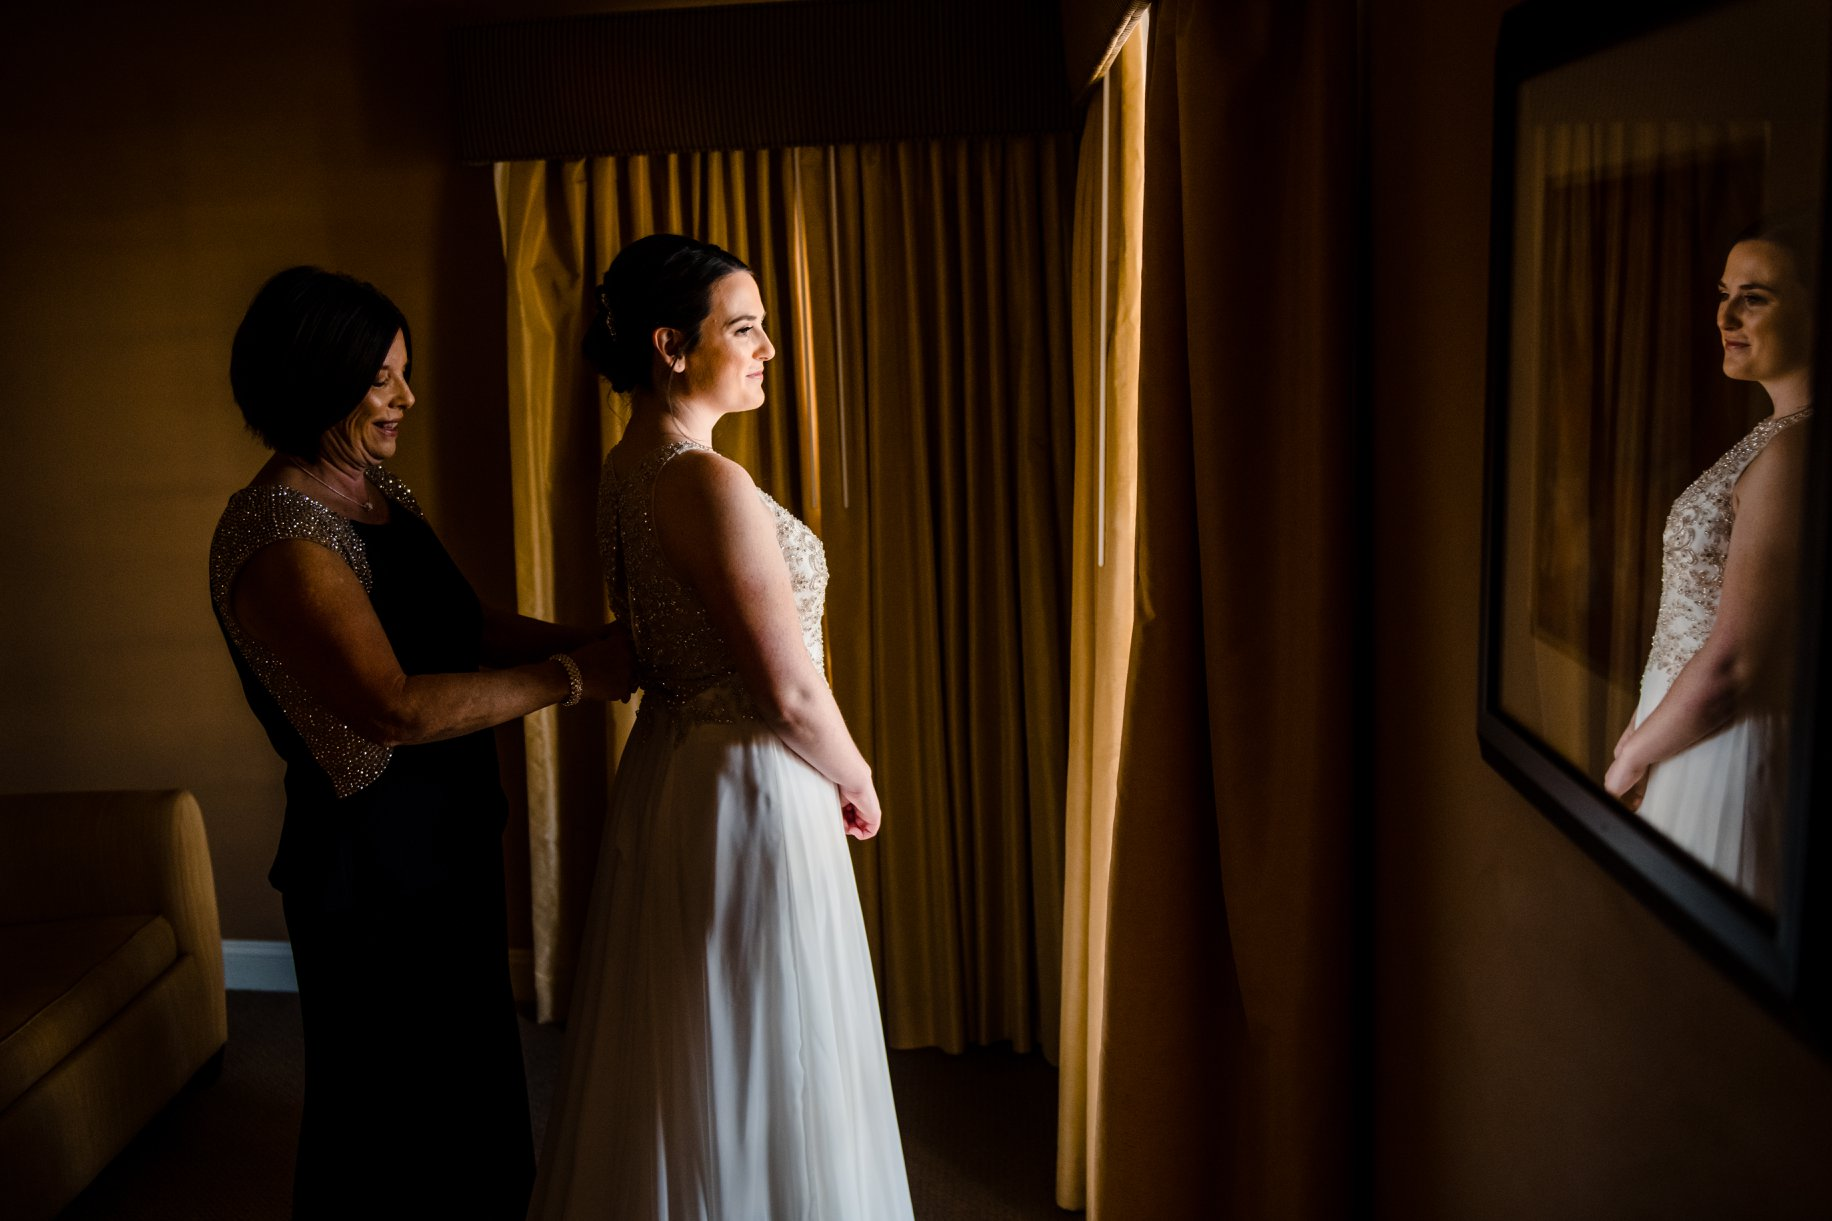 maggie sottero bride in beaded flowy wedding dress at modern traditional american hotel wedding